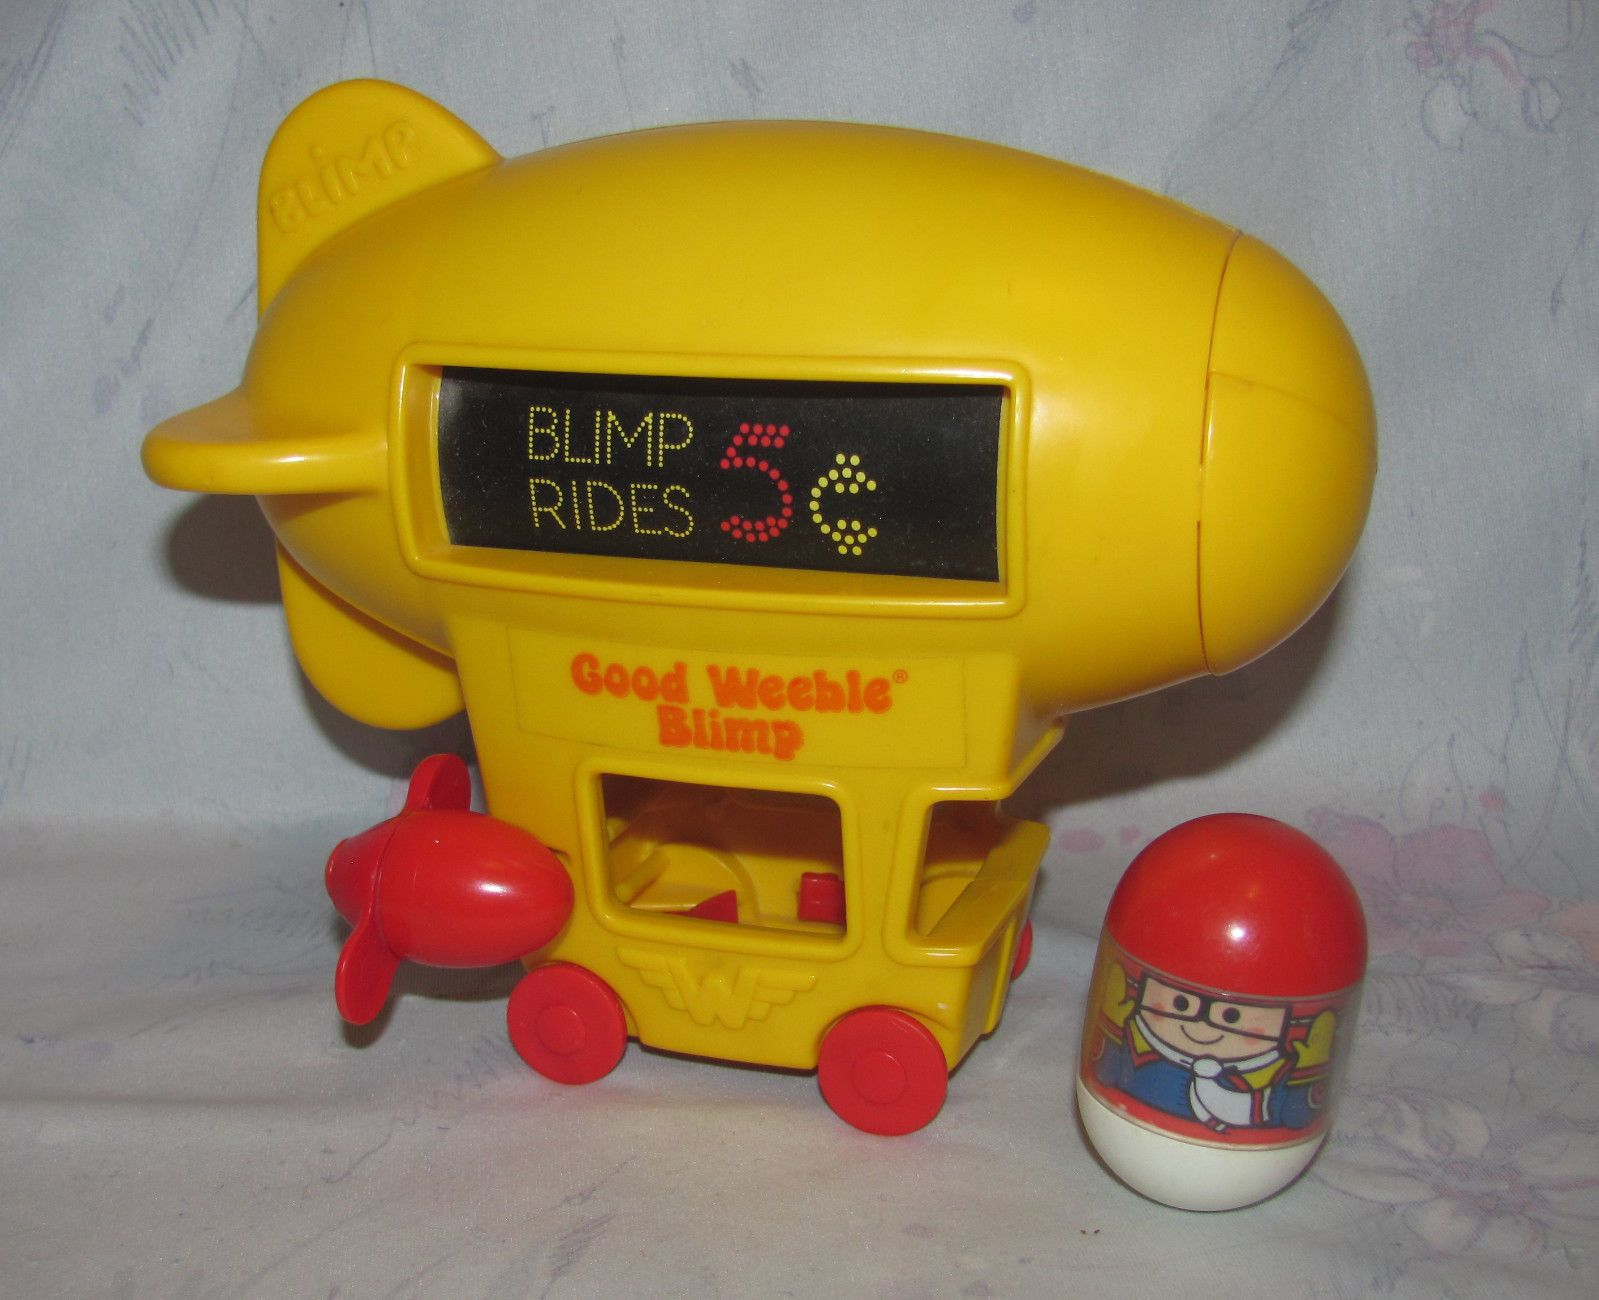 WEebles blimp toy